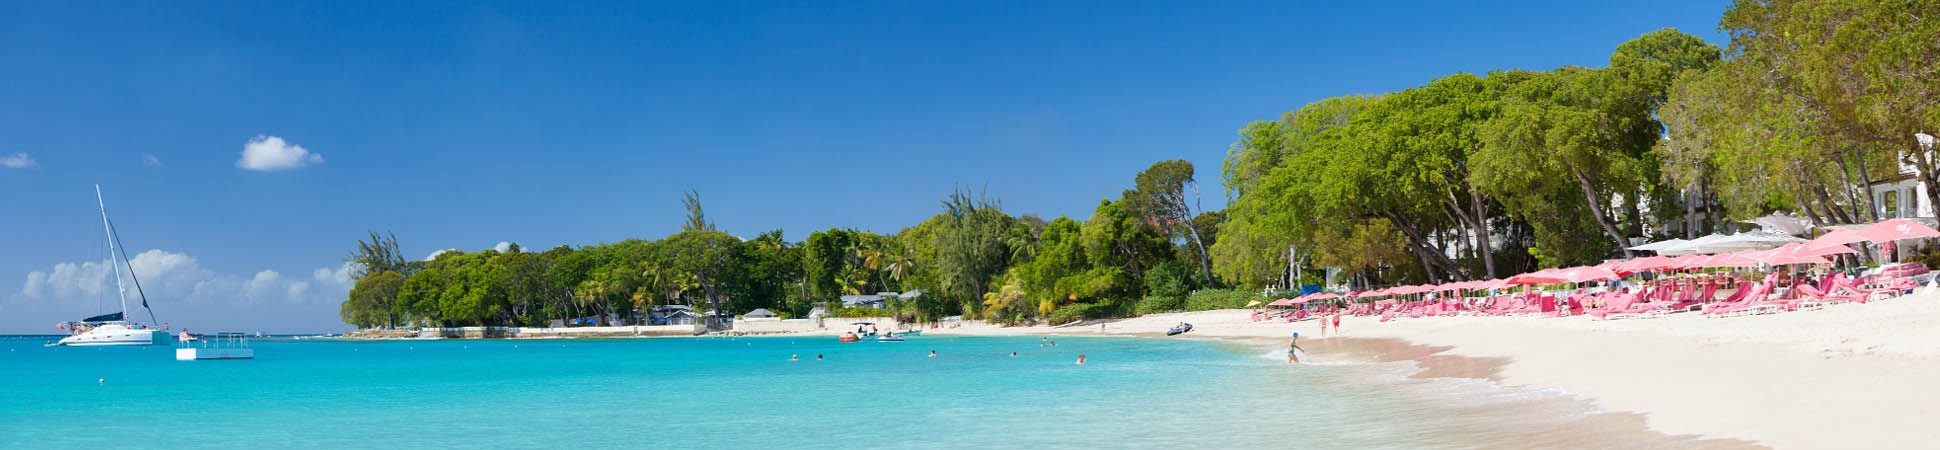 The beach at Sandy Lane, Barbados